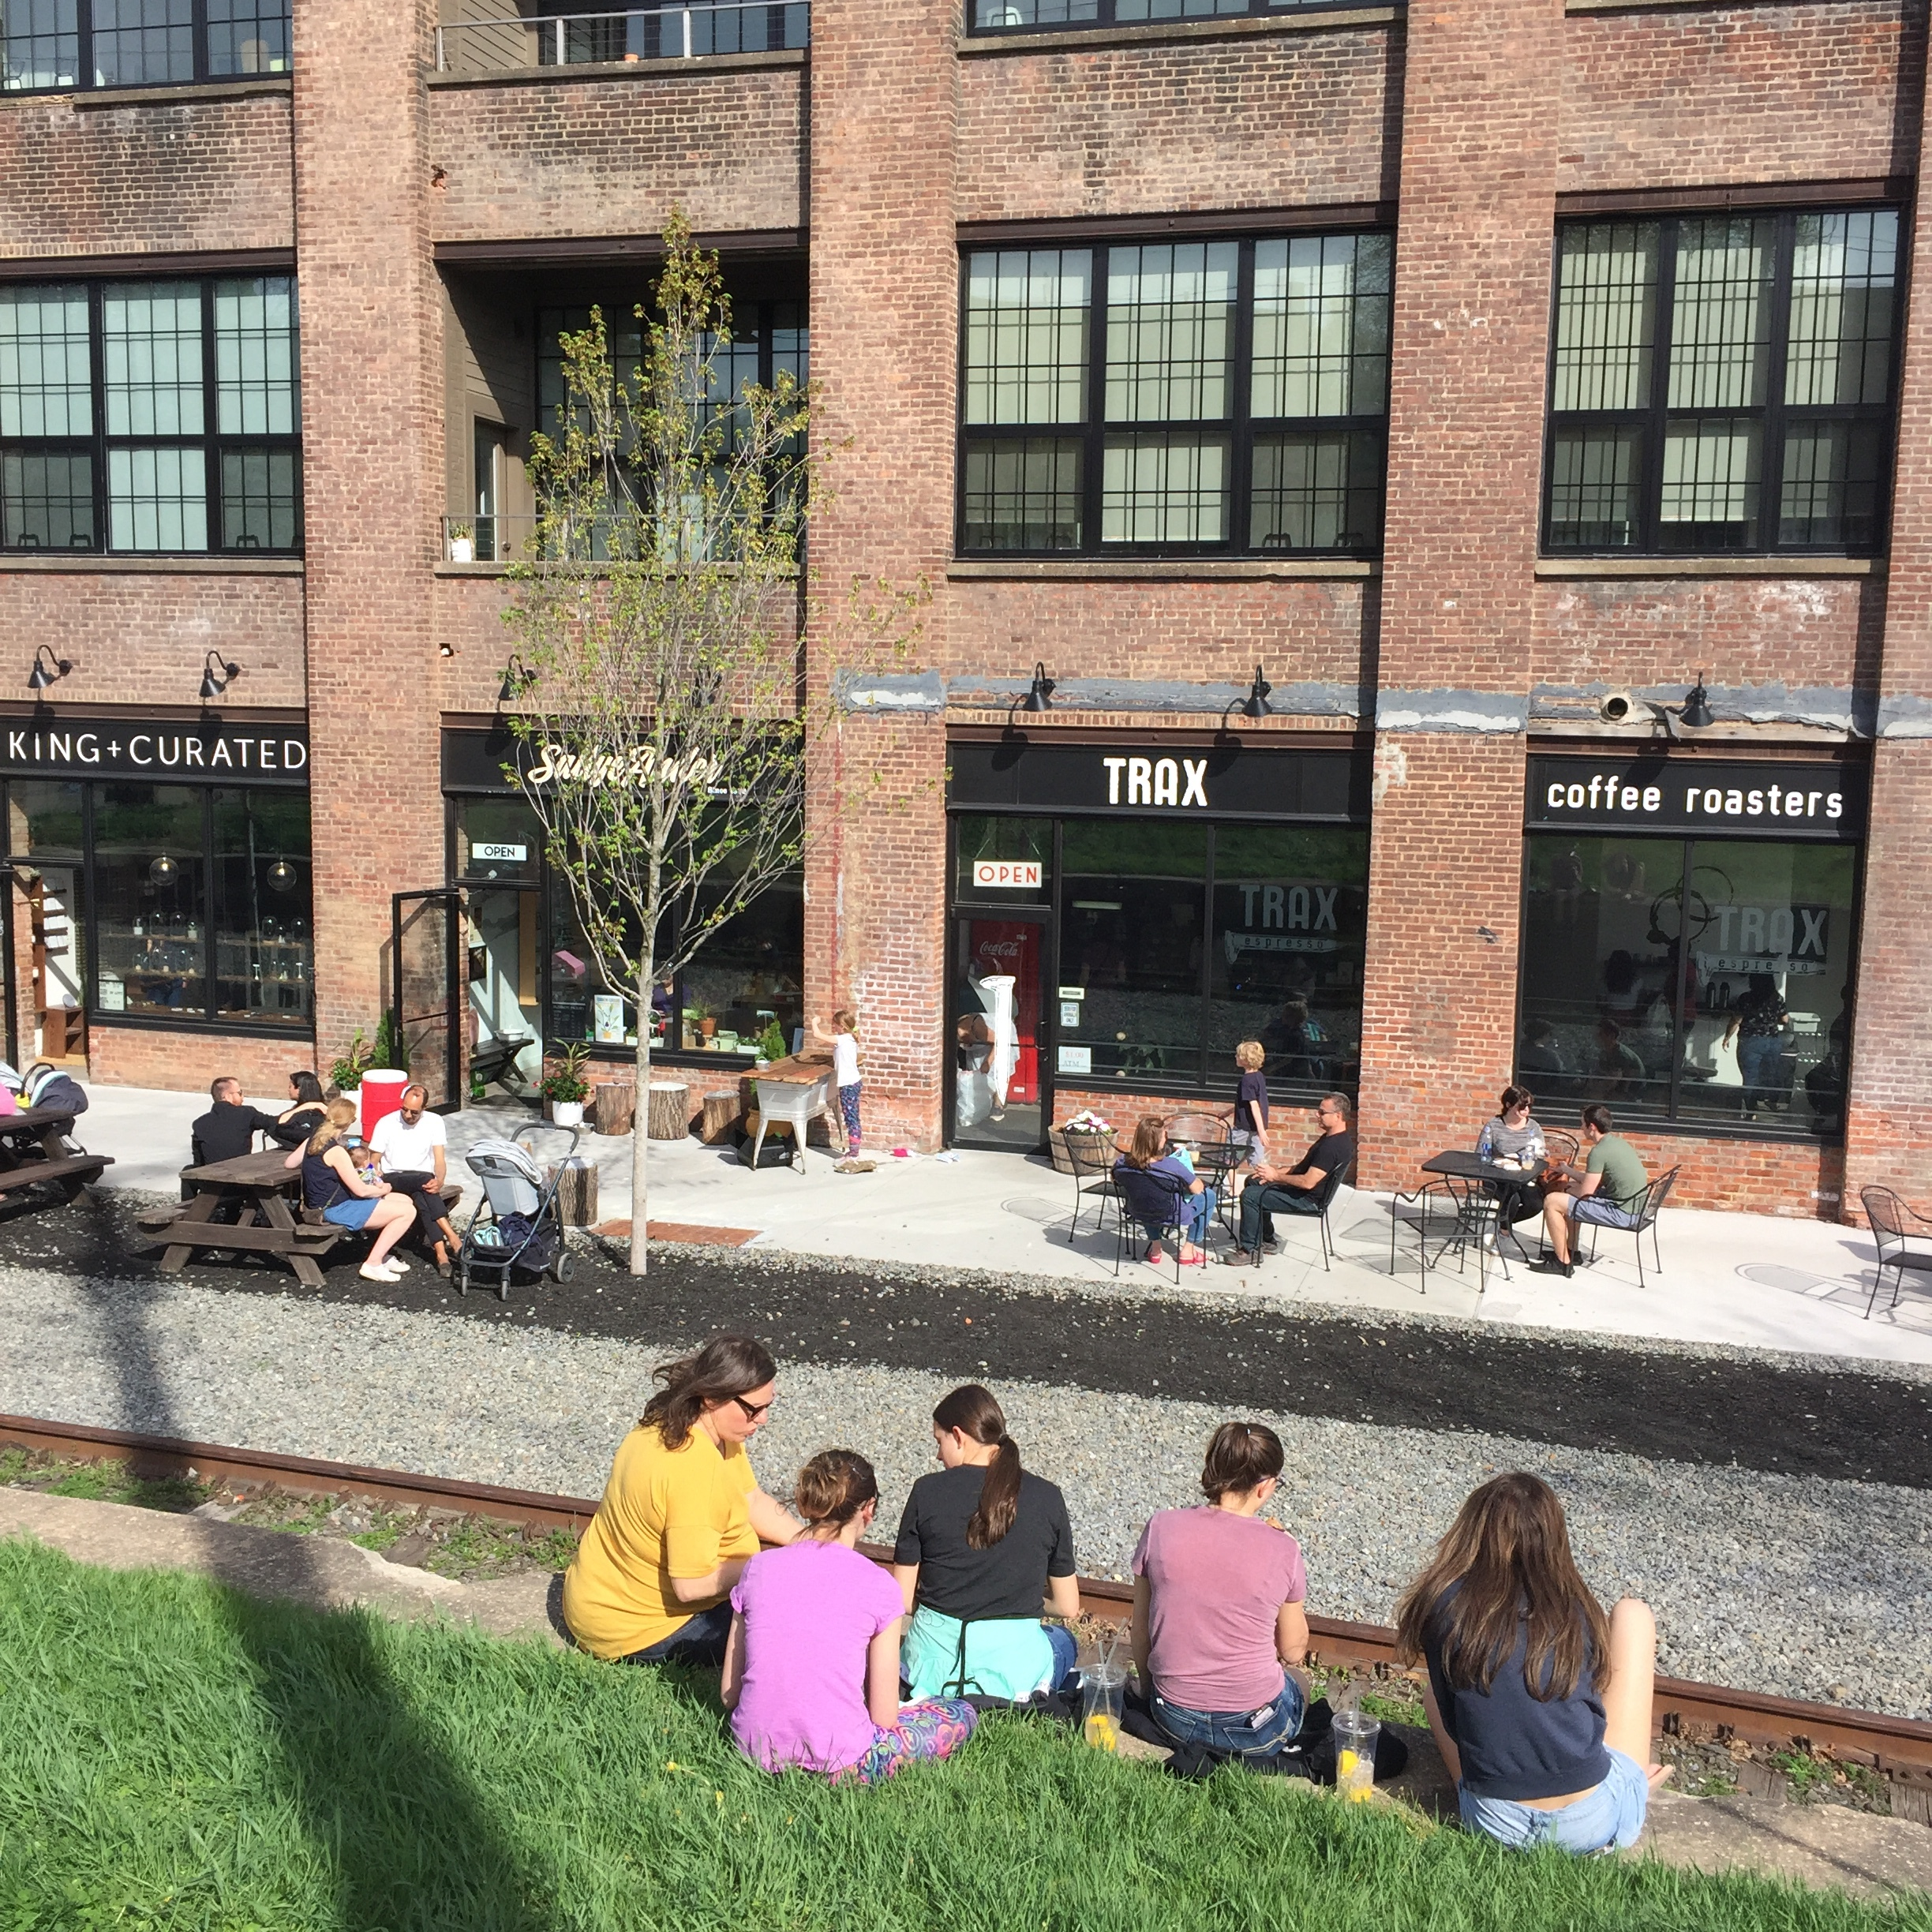 During Last year's Cupcake Festival, no one ventured down to 1 East Main, which is literally Just down a grassy hill from the Happenin' Event. This year, Since  Trax Coffee Roasters Has moved in , Cupcake Aficionados Were Happy to venture down the hill.  Photo Credit: Katie Hellmuth Martin